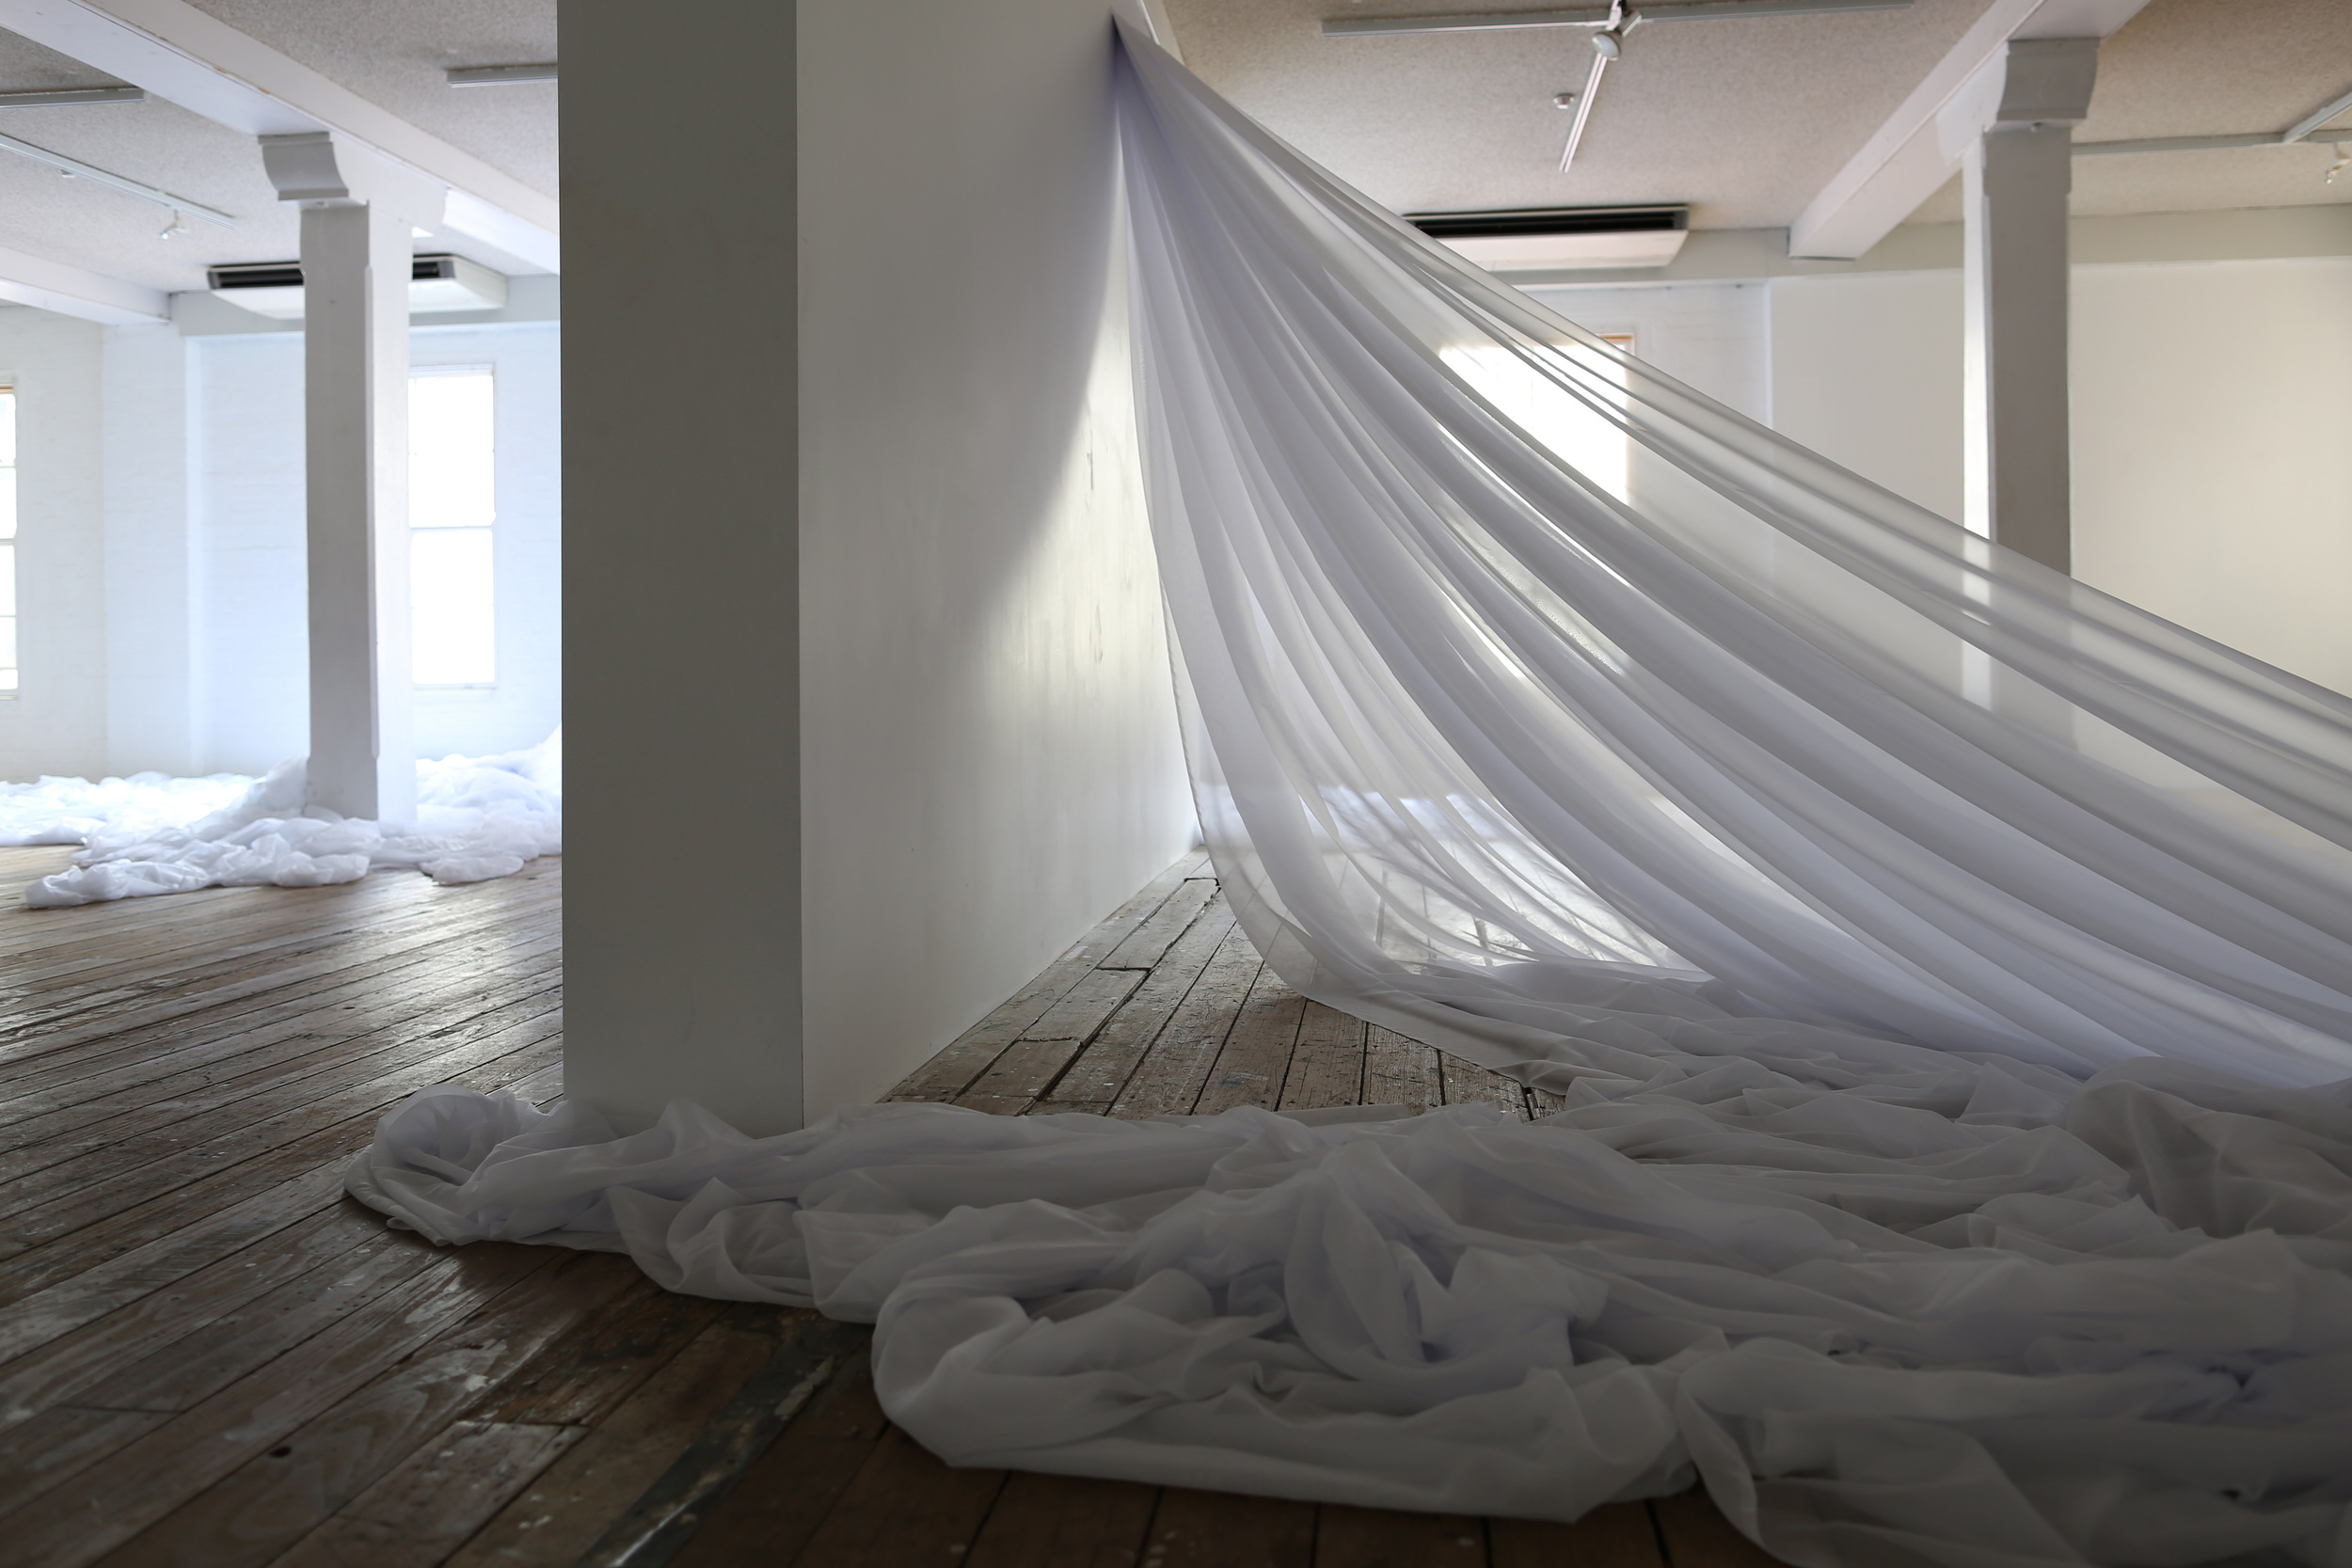 searching, 2014, Voile, Dimensions Variable.